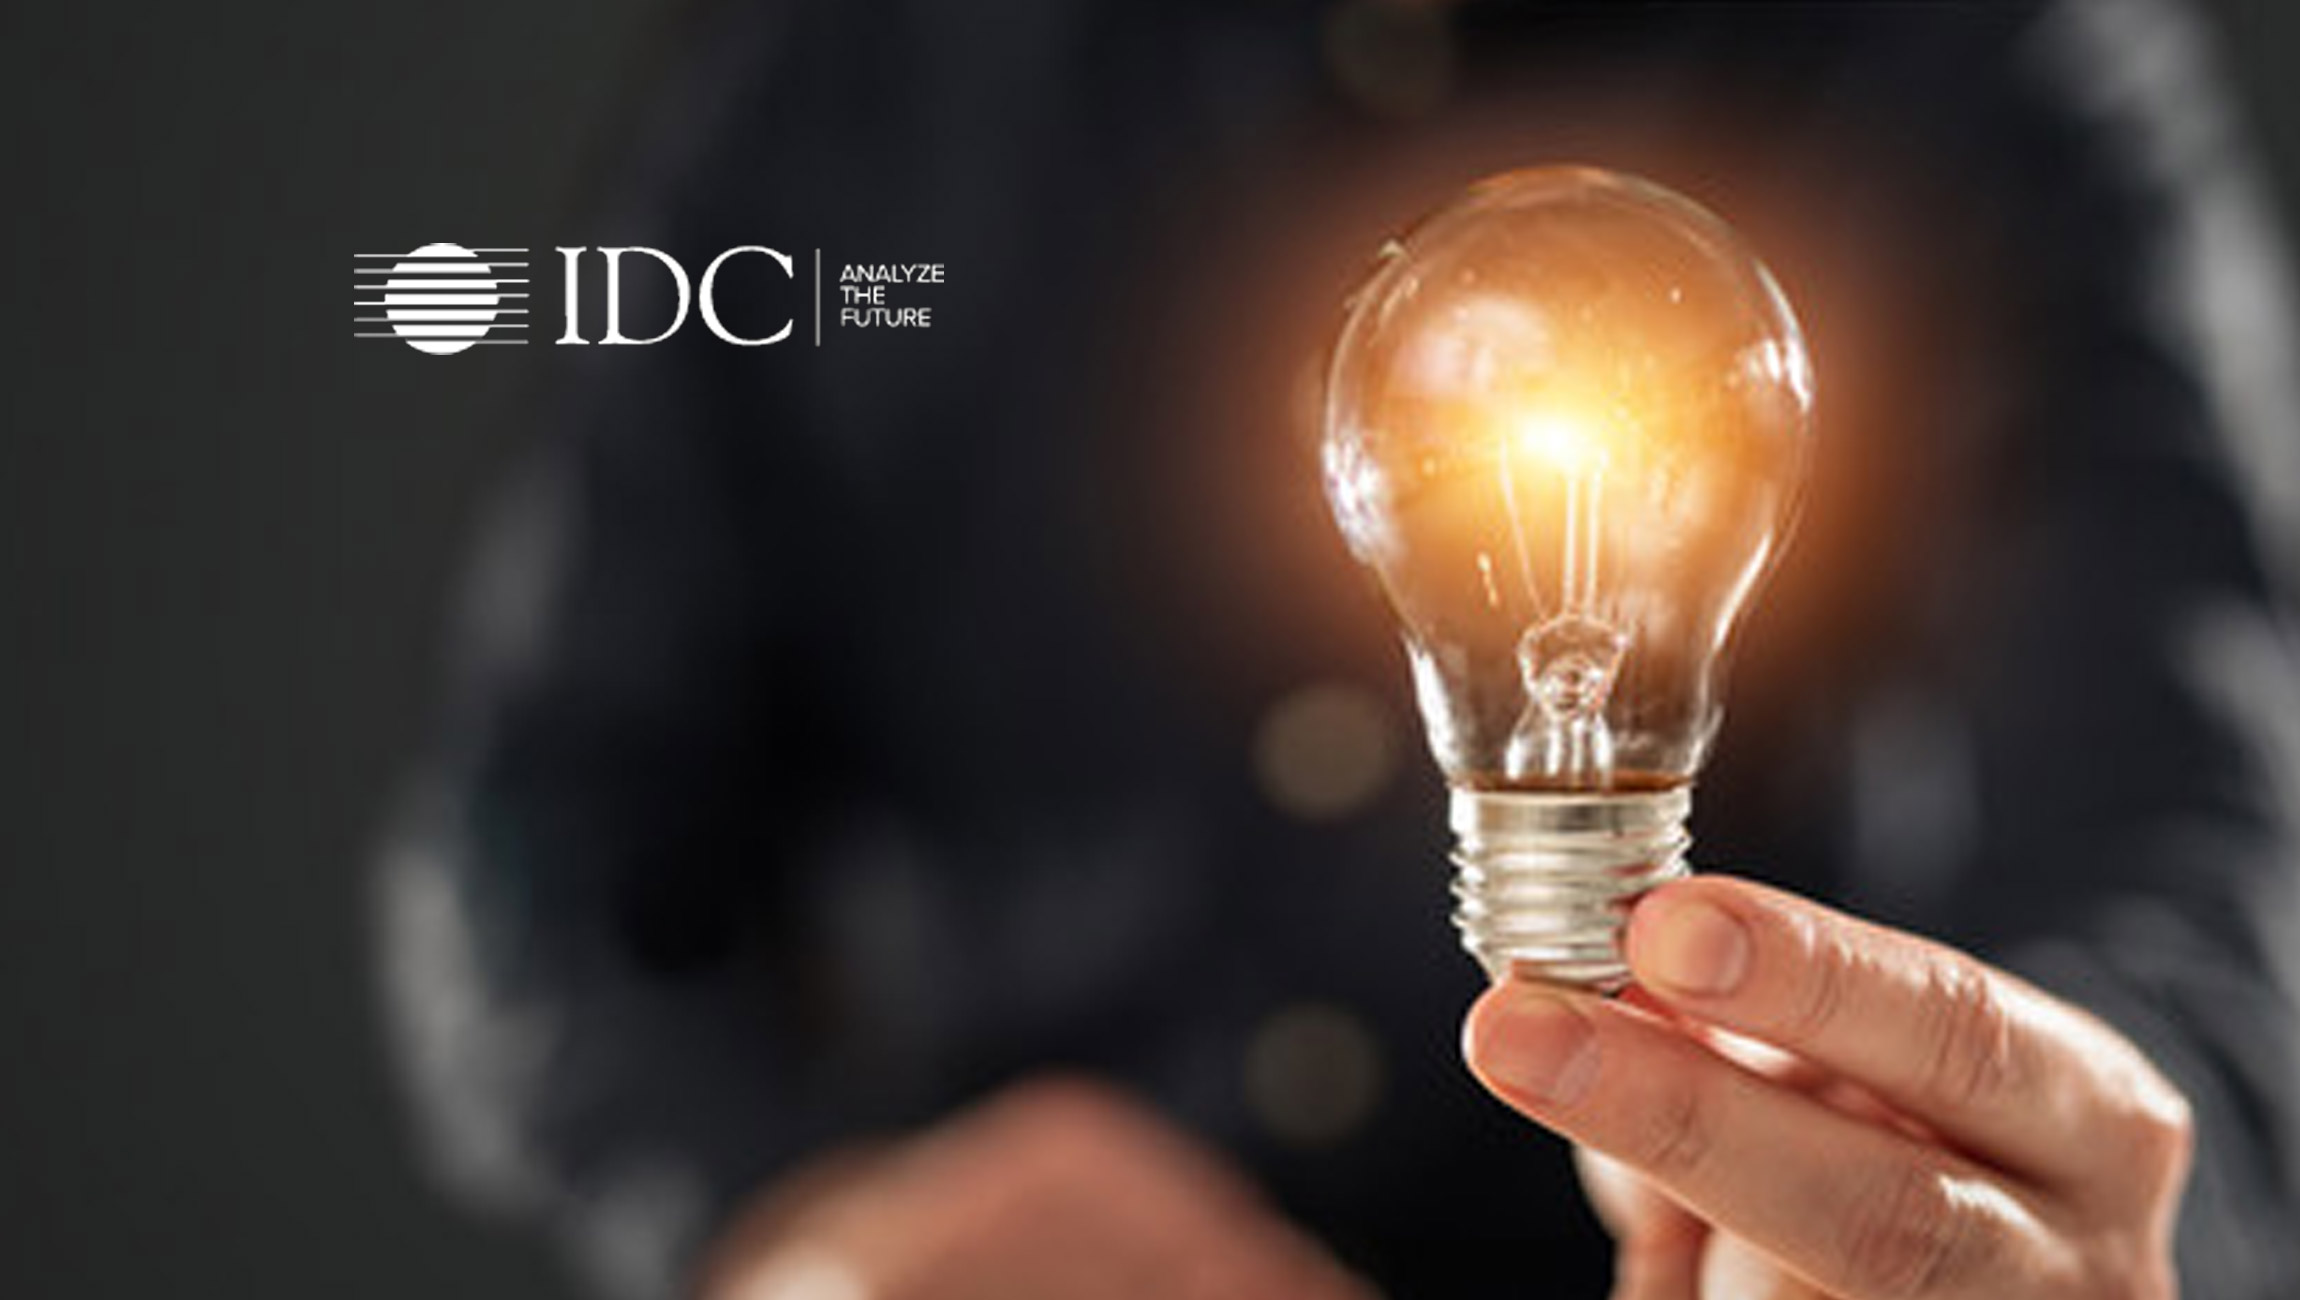 Worldwide Unified Communications & Collaboration (UC&C) Market Soars in 2020, According to IDC